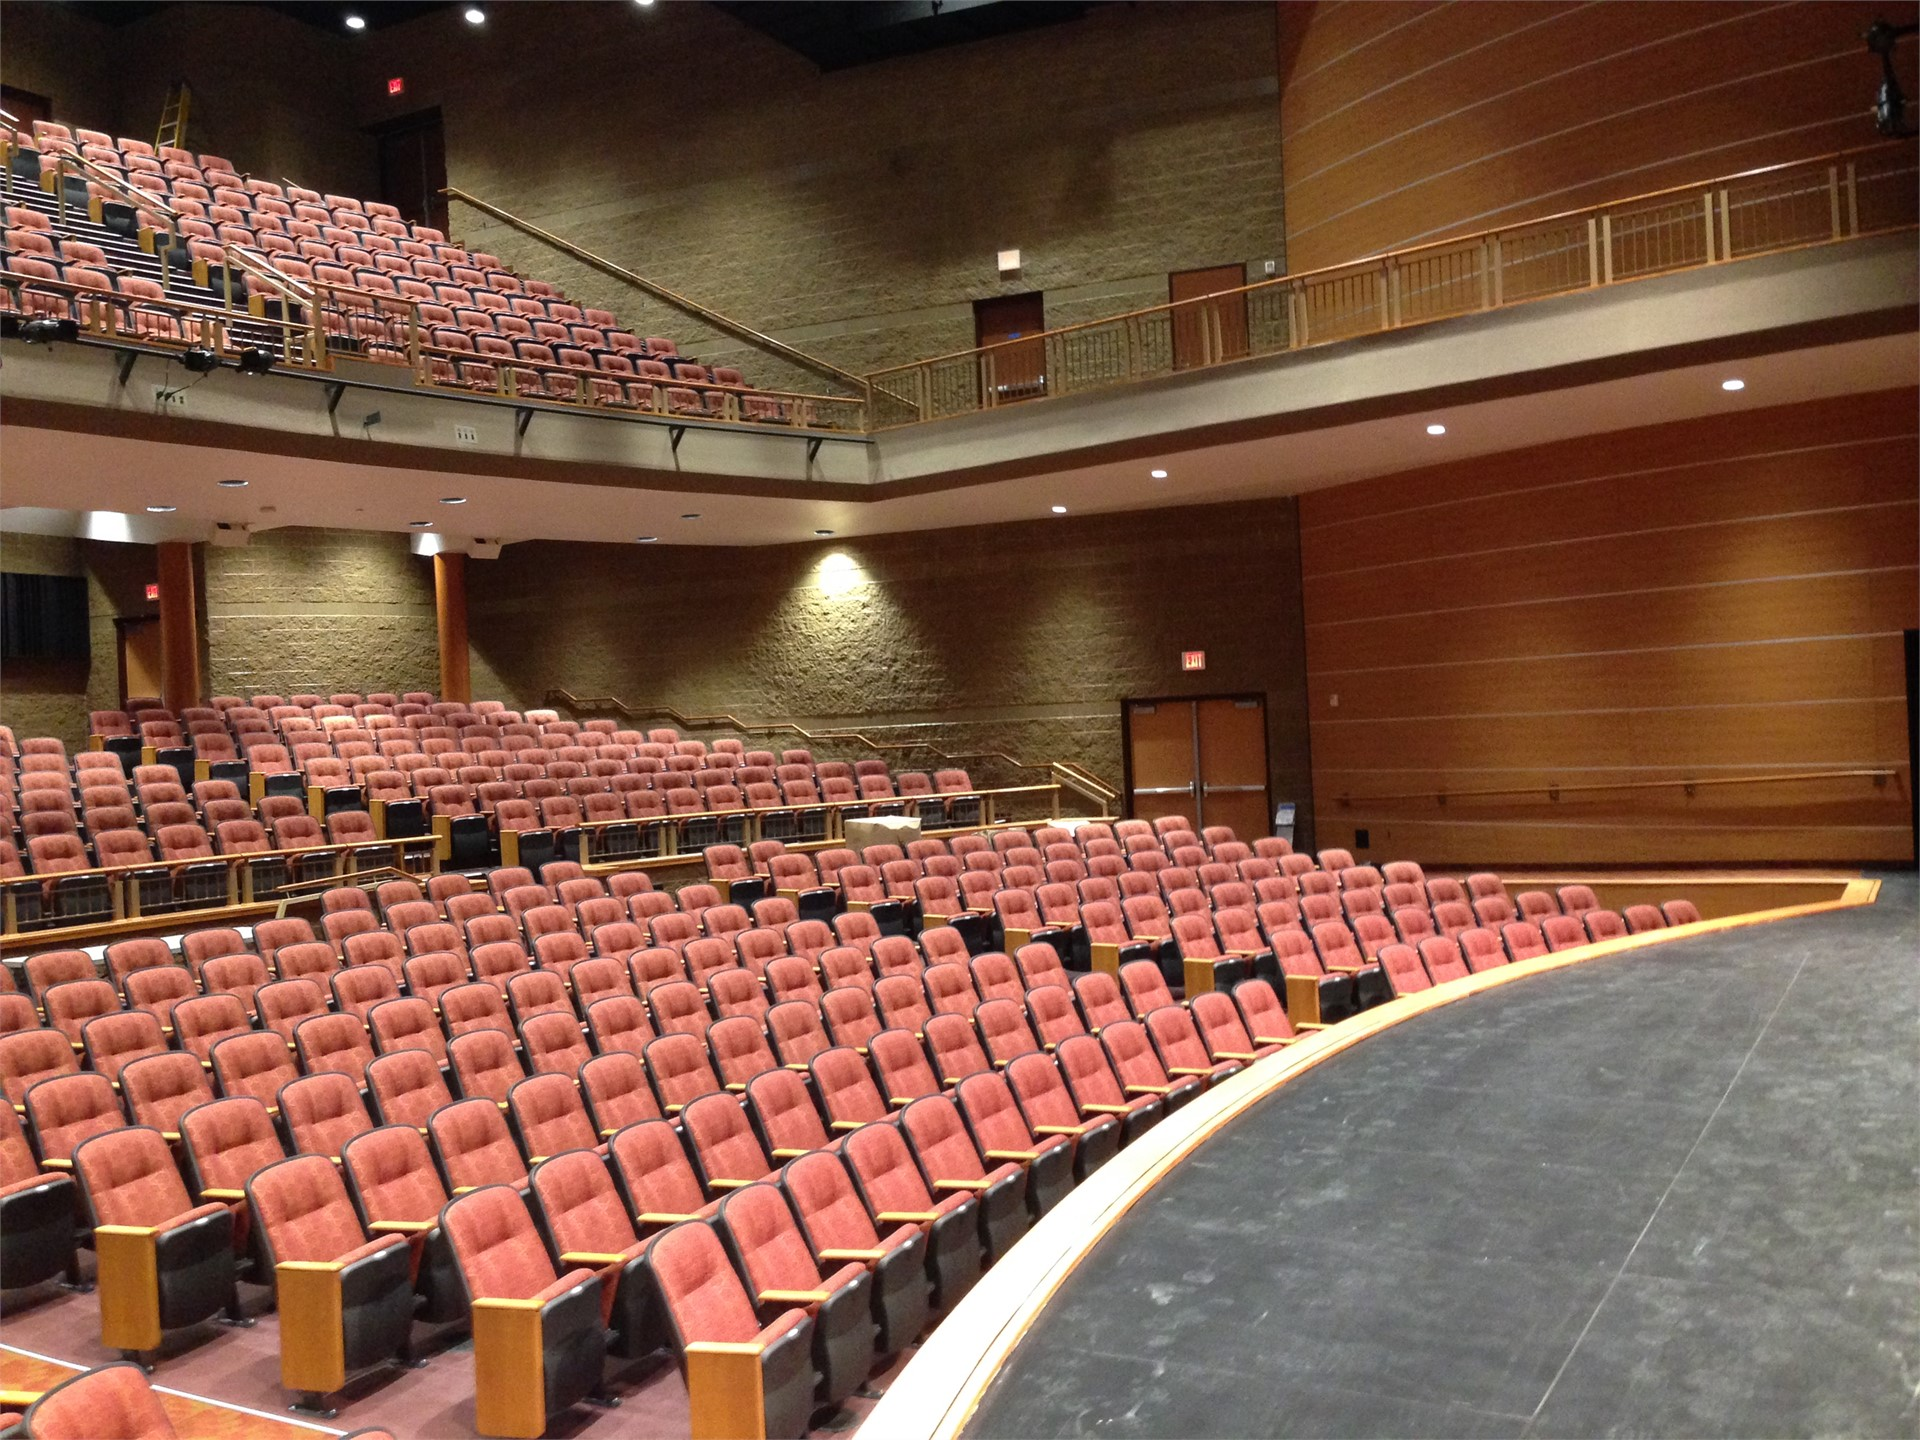 Picture of seating from stage right